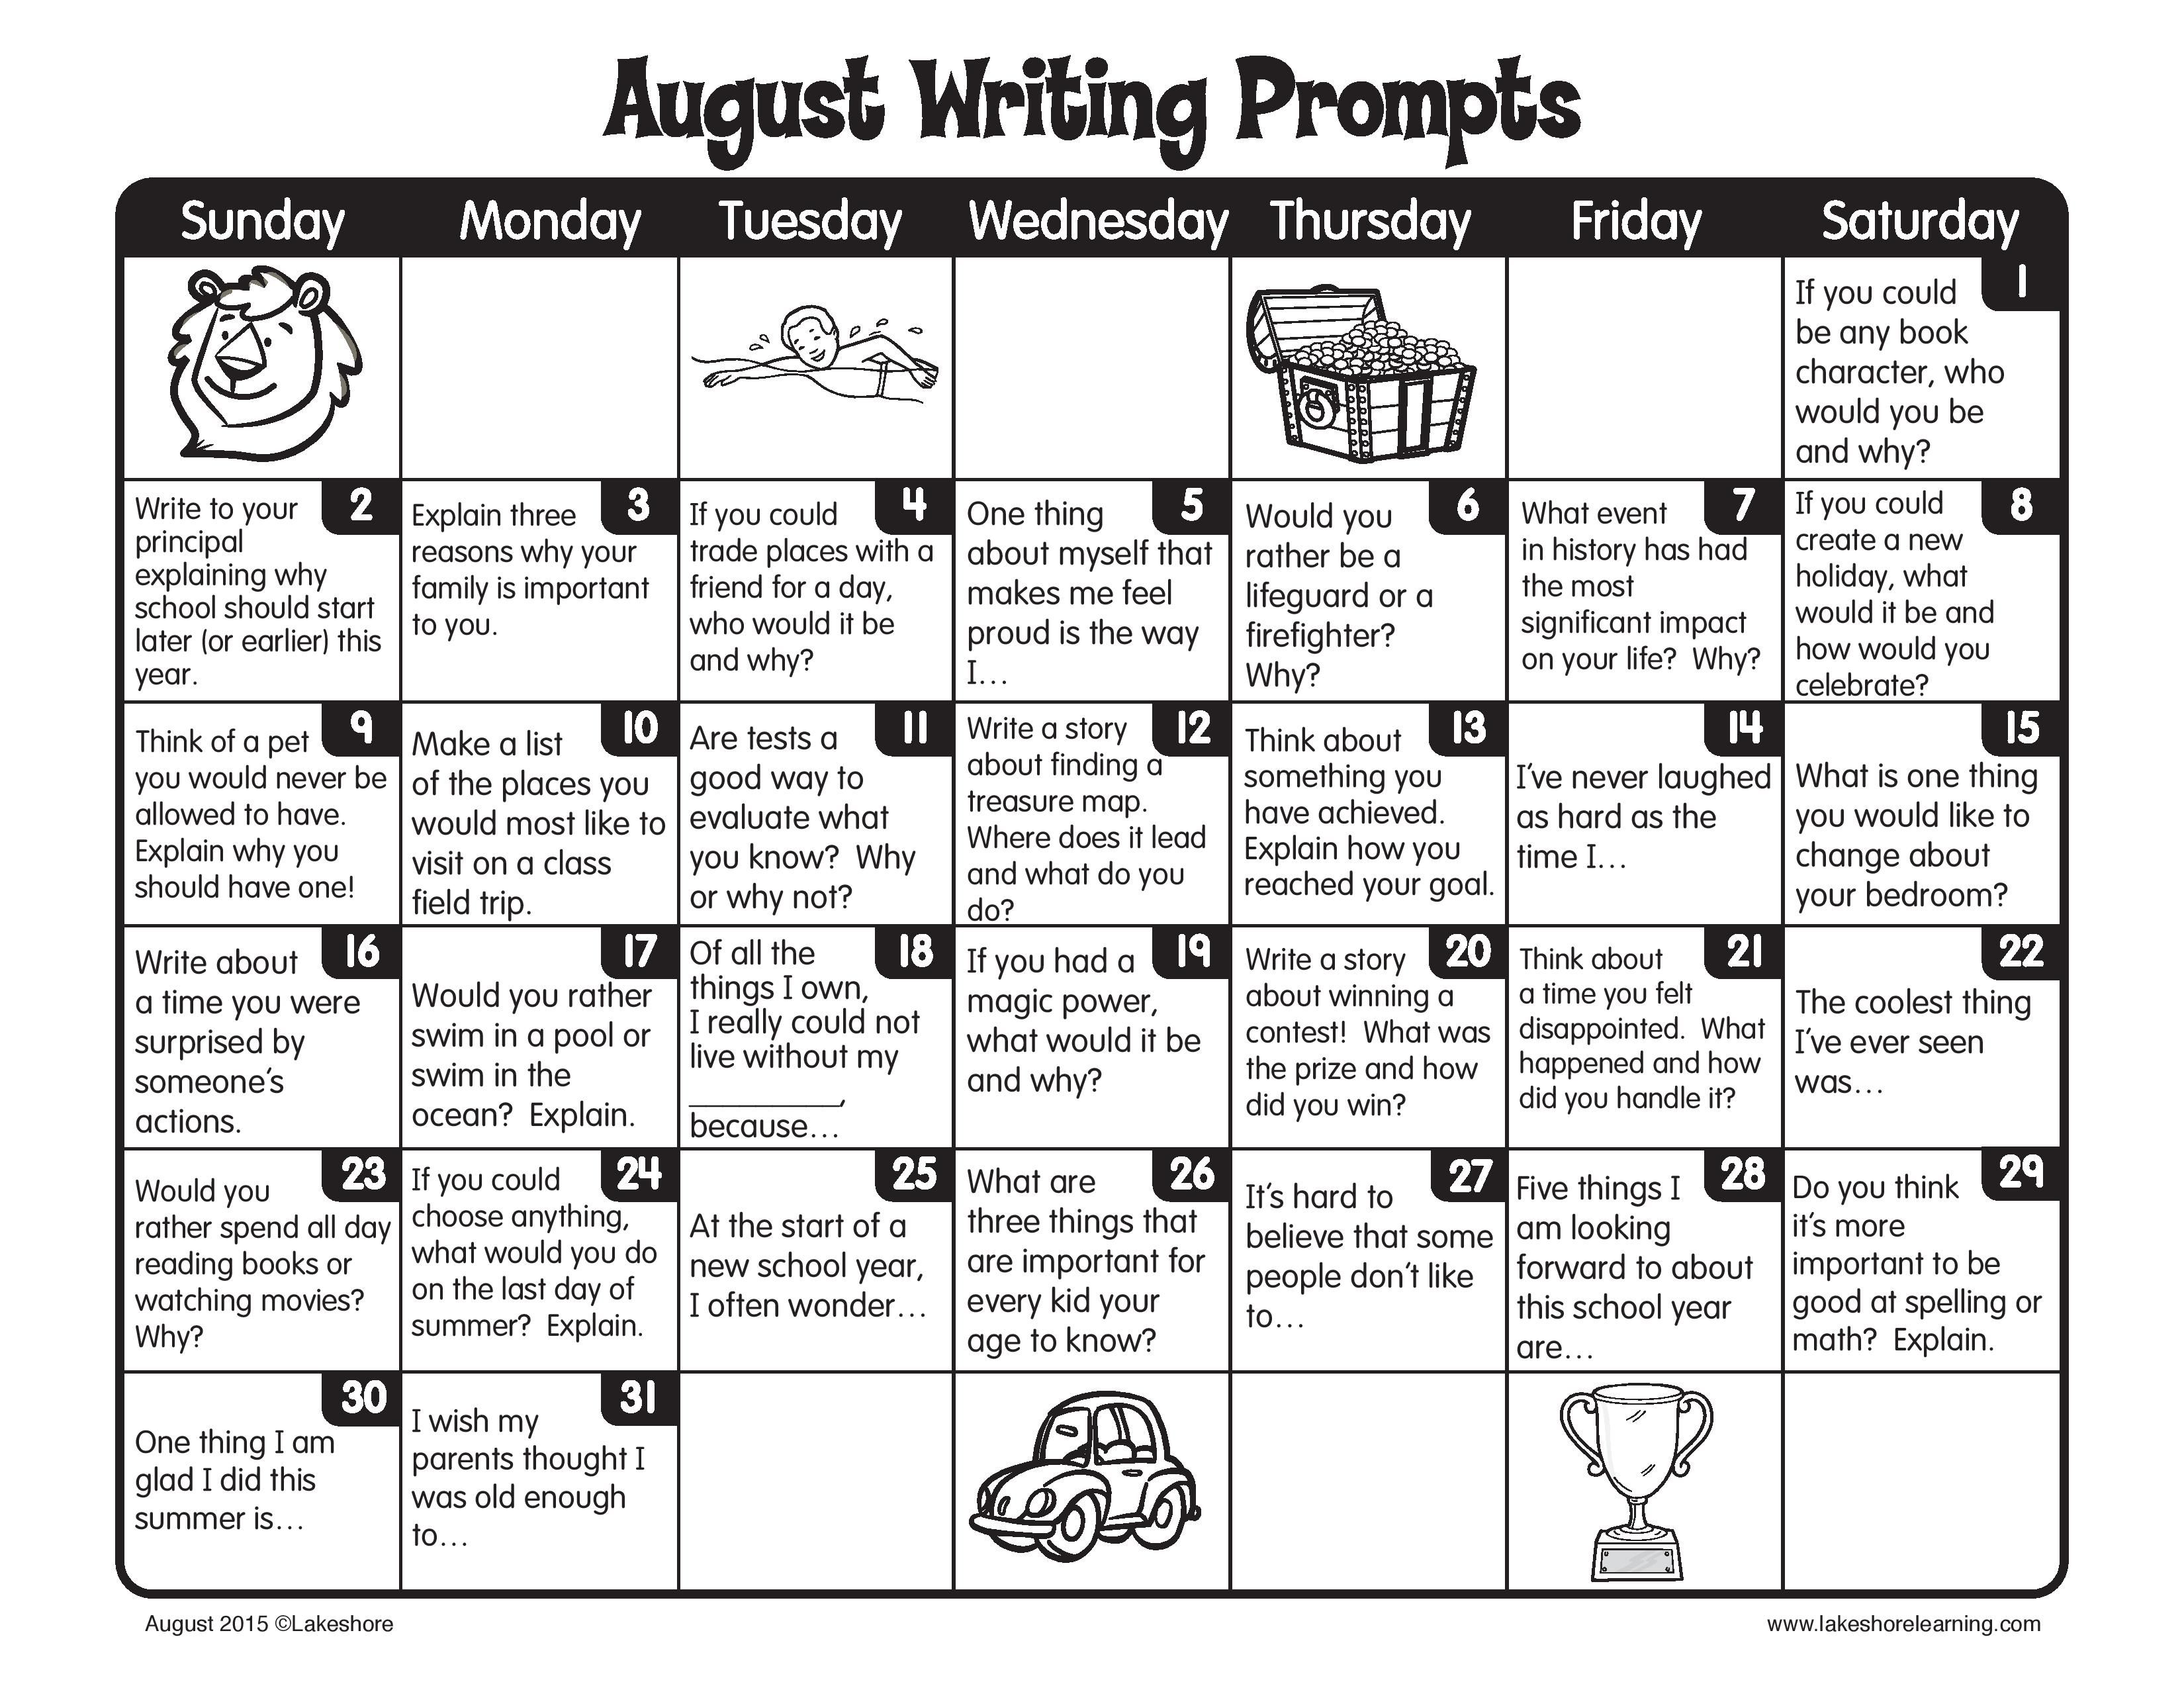 Our August Writing Prompts Are Filled With Lots Of Fun